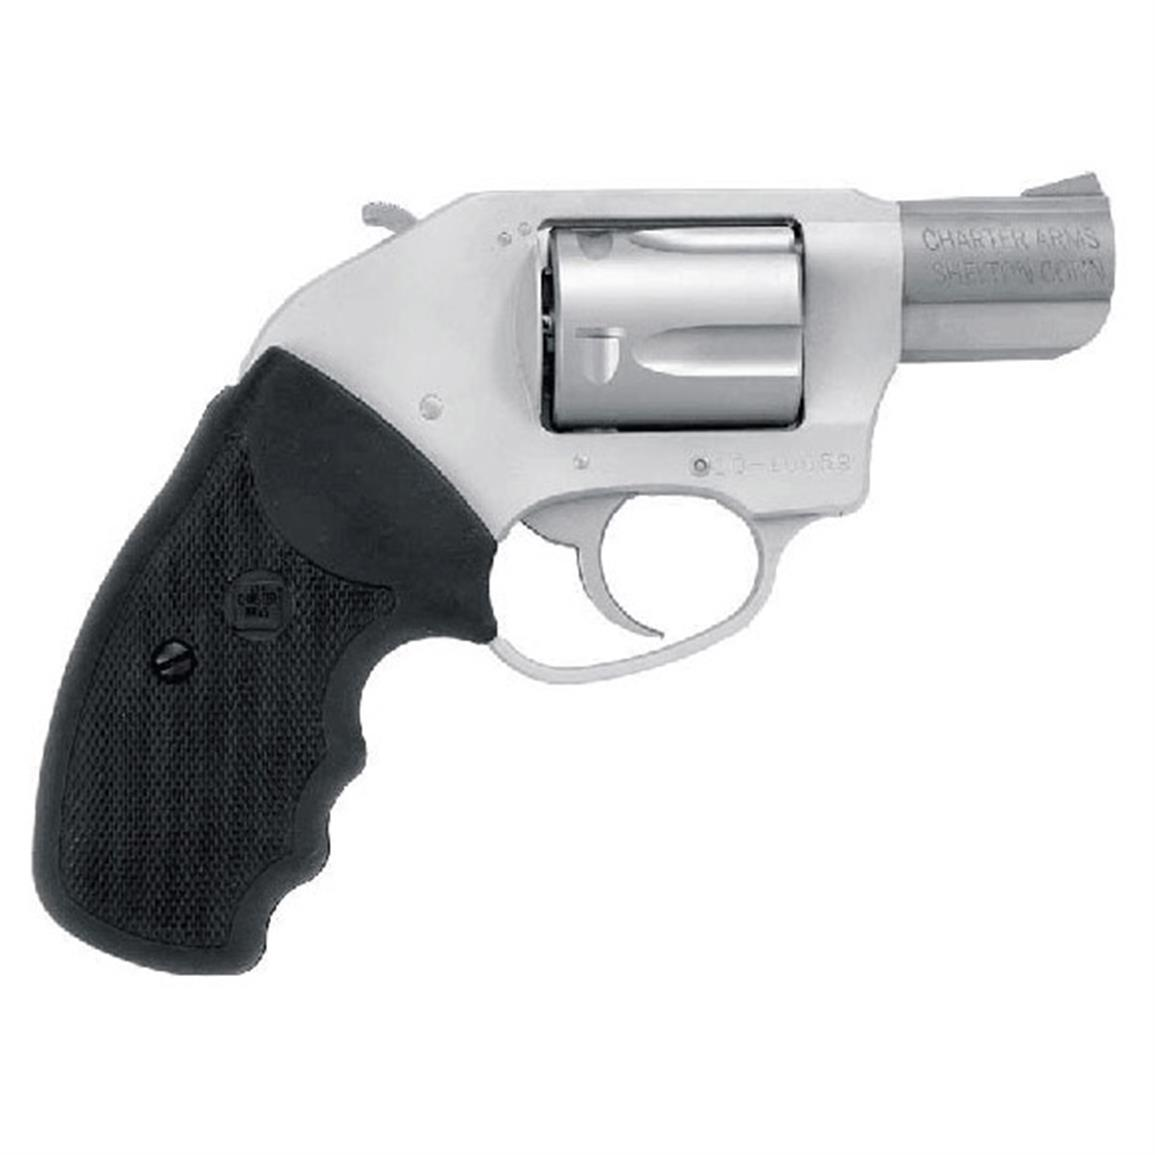 "Charter Arms Mag Pug On Duty, Hammerless/DAO, Revolver, .357 Magnum, 2.2"" Barrel, 5 Rounds"